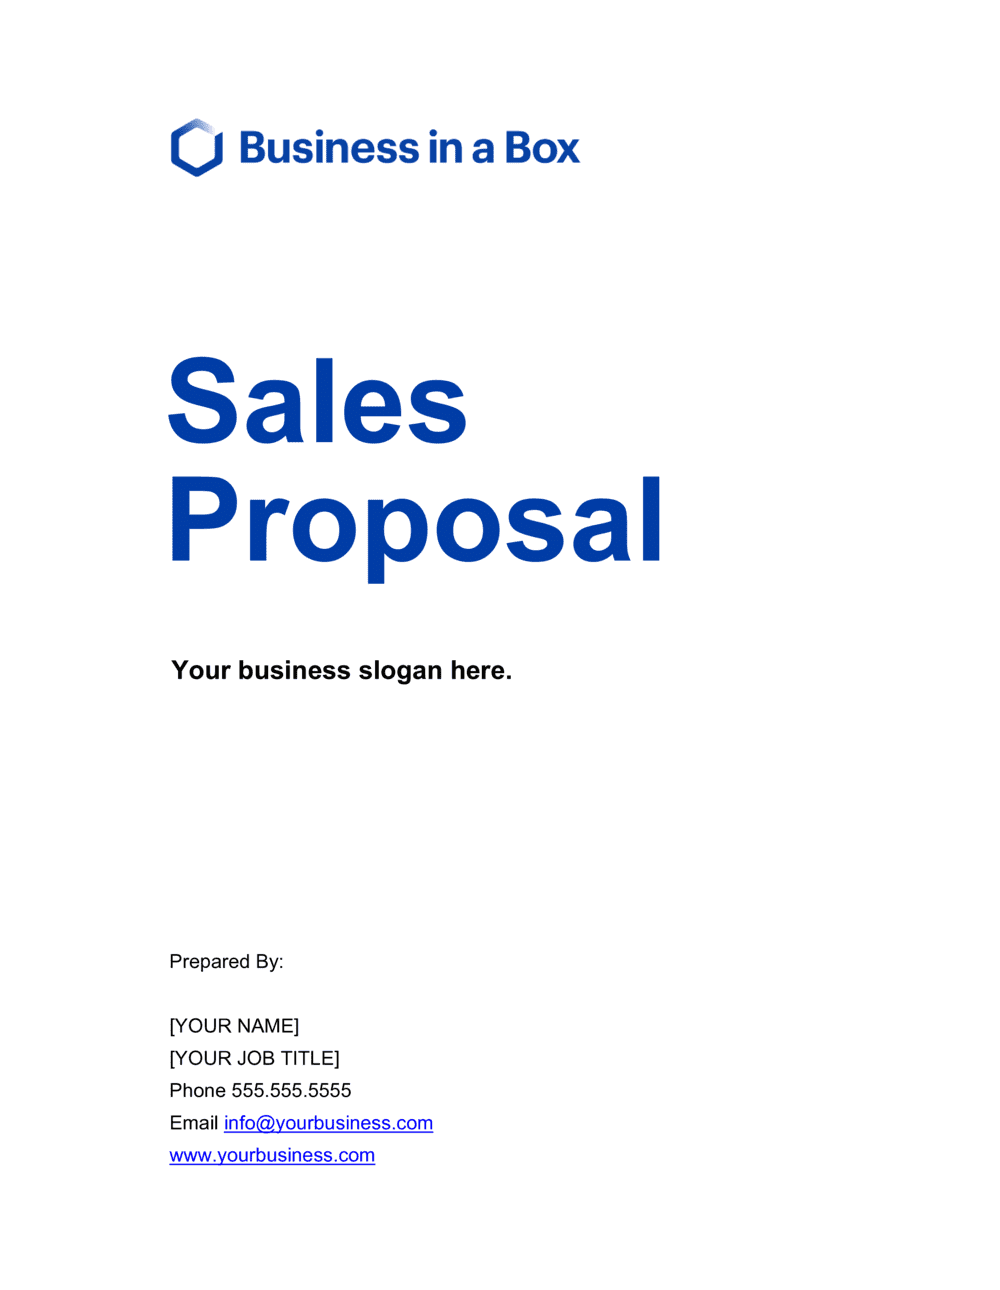 Business-in-a-Box's Sales Proposal Template